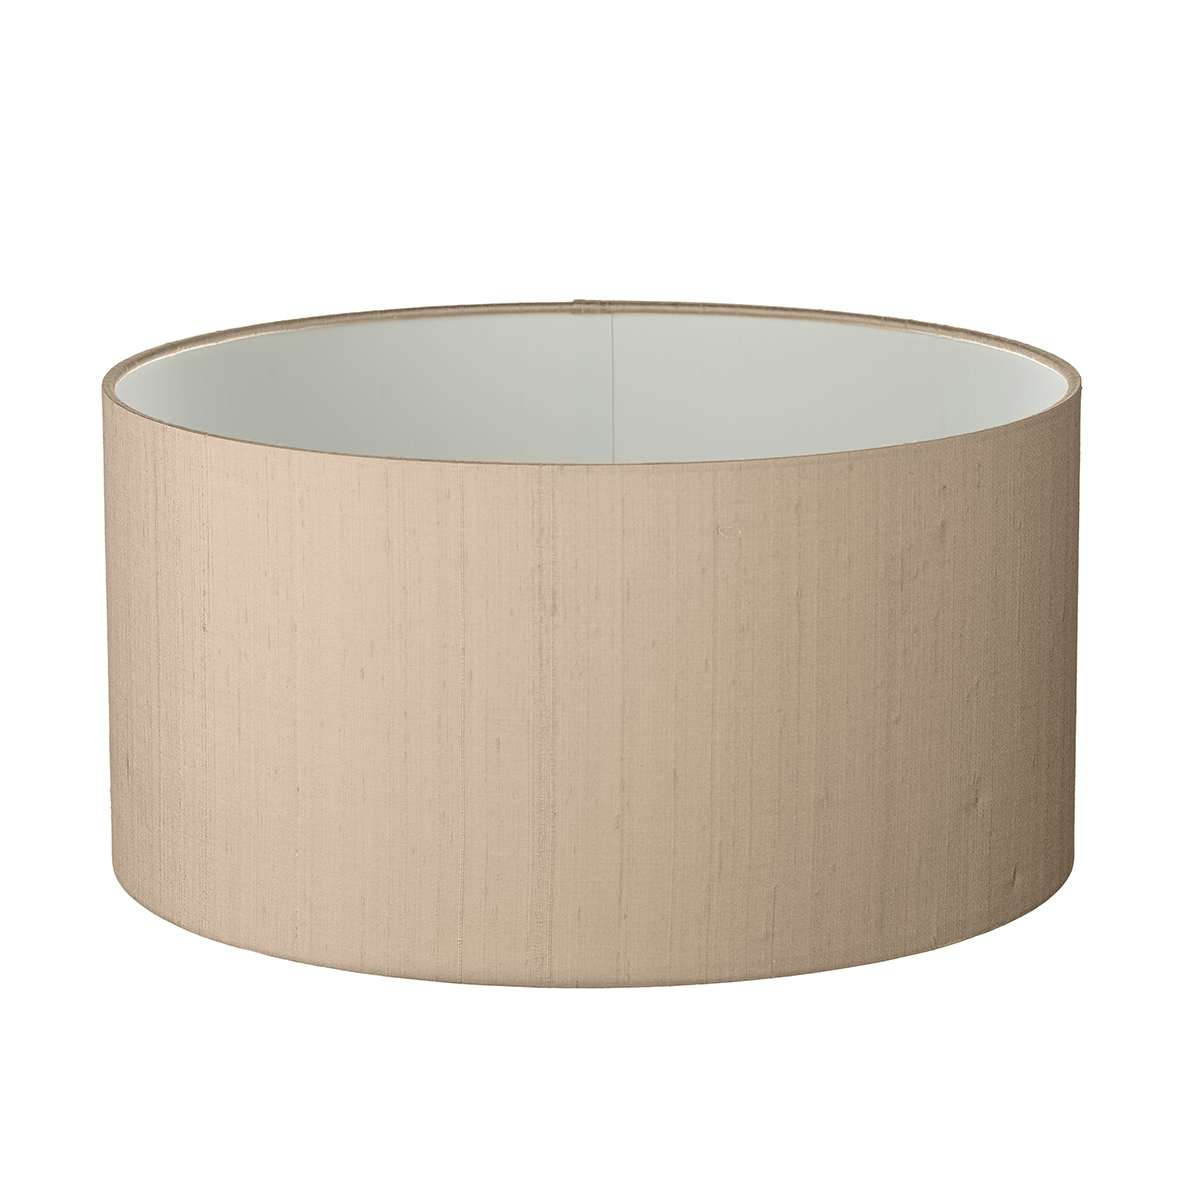 Drum Shallow 20cm 100% Silk Shade with Shade Colour Options